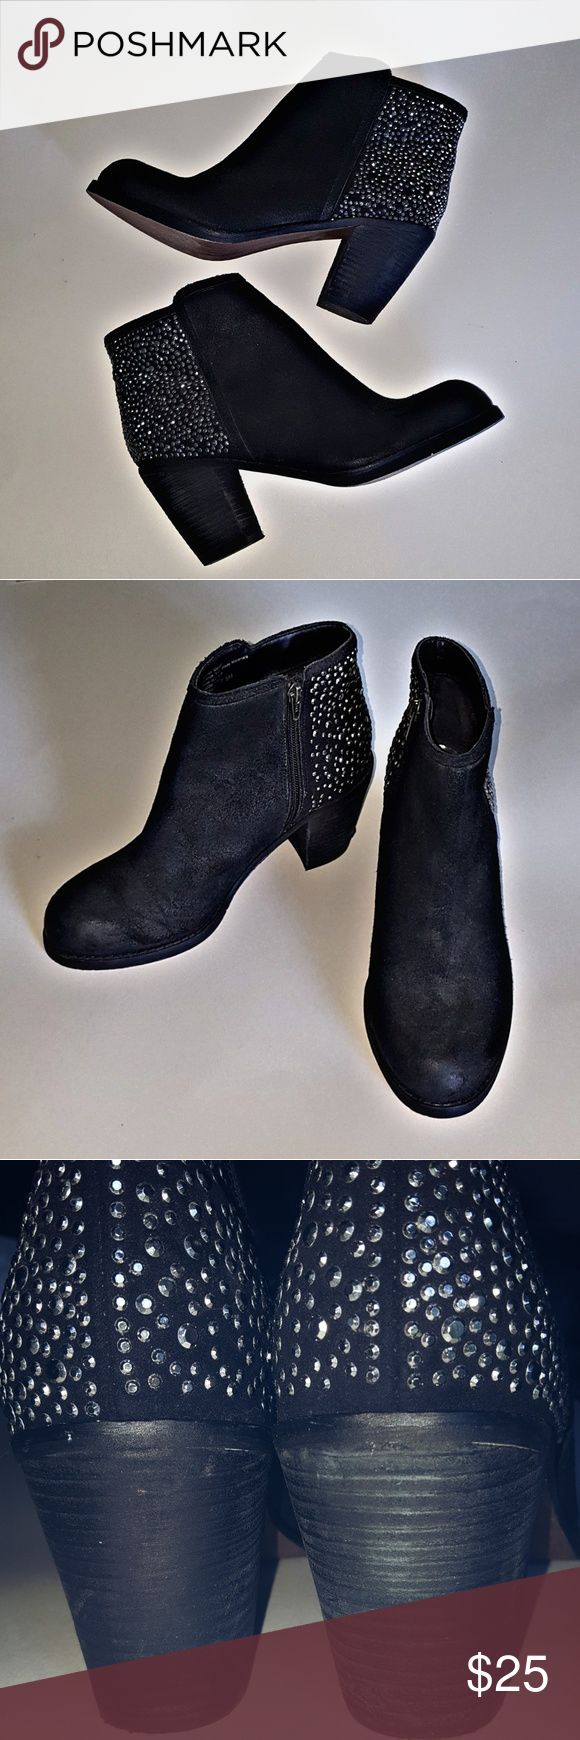 Carlos Santana Studded Sparkly Ankle Bootie Heels Carlos Boots  Size 7.5  3in heel  Great Condition - Minimal Ware  Suede like material  Thanks for reading and have a great day! Carlos Santana Shoes Ankle Boots & Booties